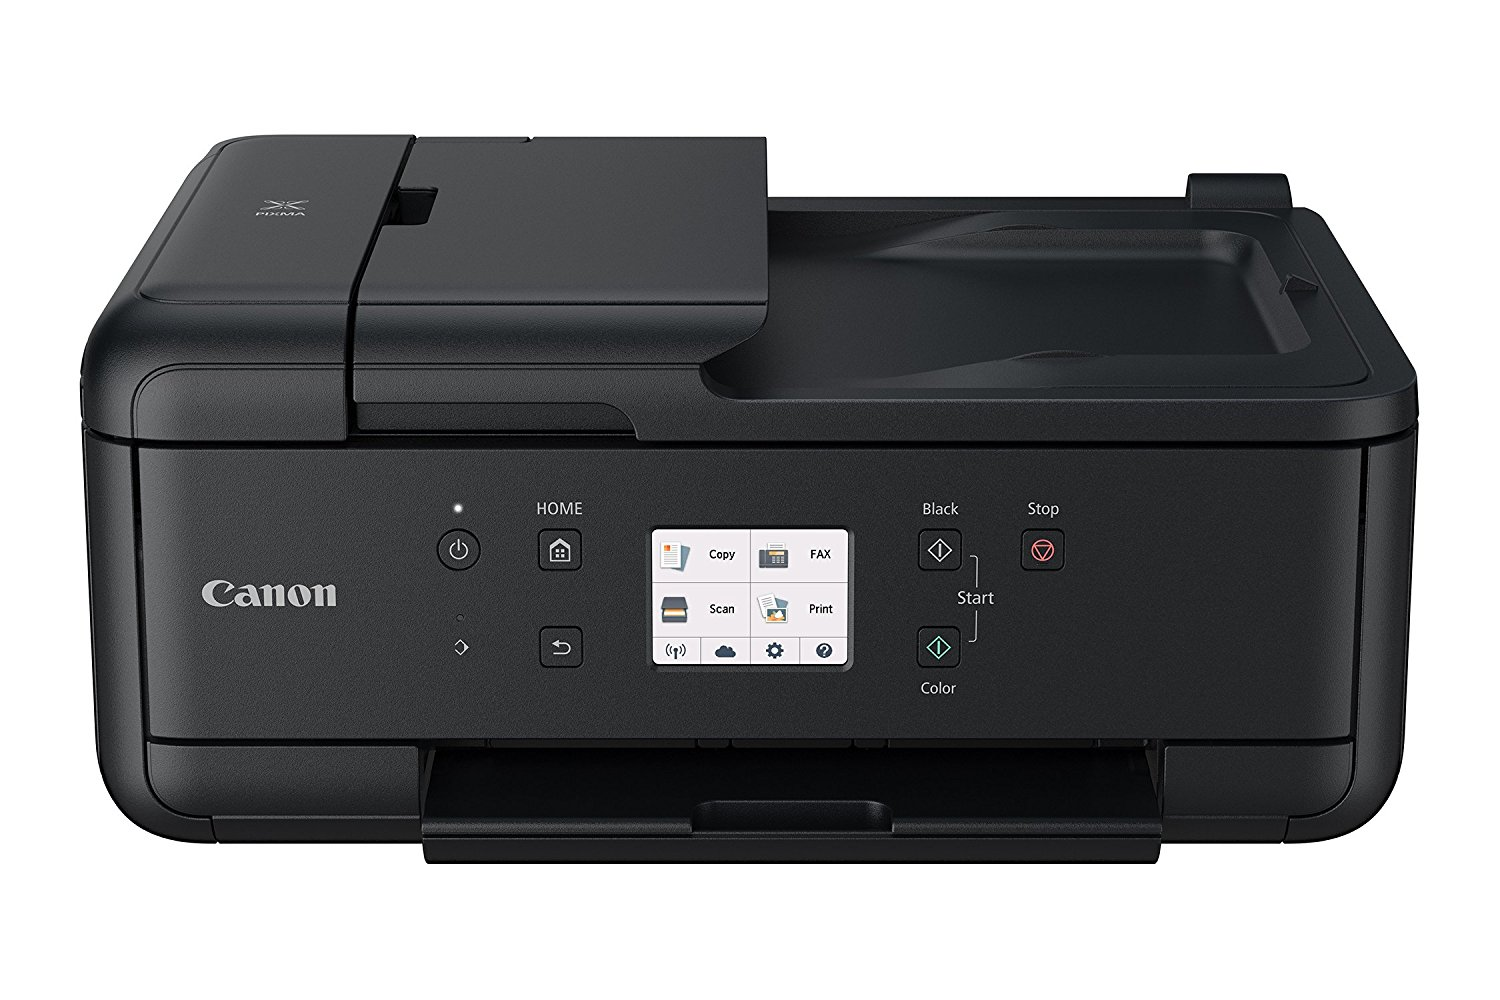 DELL A90 PRINTER DOWNLOAD DRIVERS